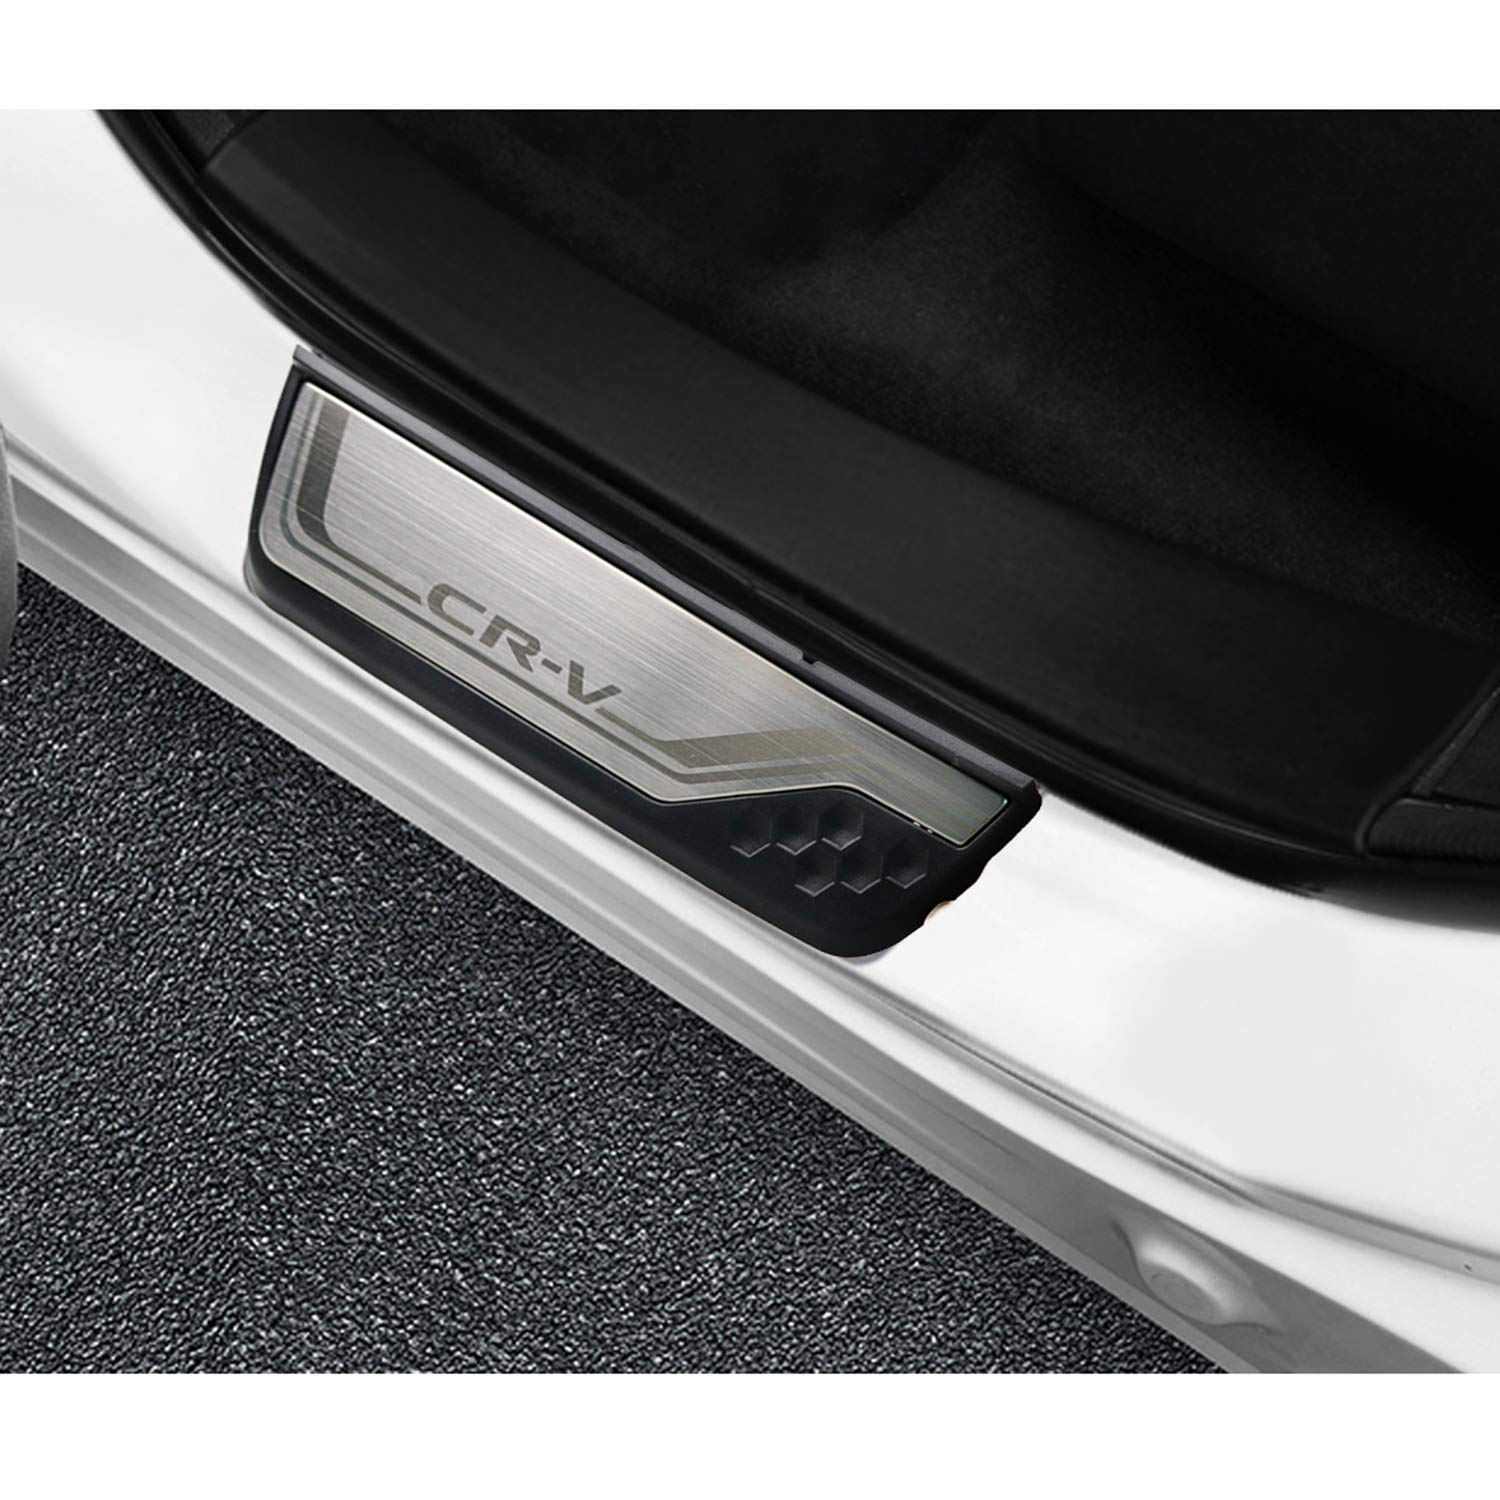 Scuff Plate Protector Sticker Car Styling Threshold Cover Protection Trim 4 Pcs Stainless Steel Car Kick Plates Pedal YEE PIN Door Sill Protector for CRV 5